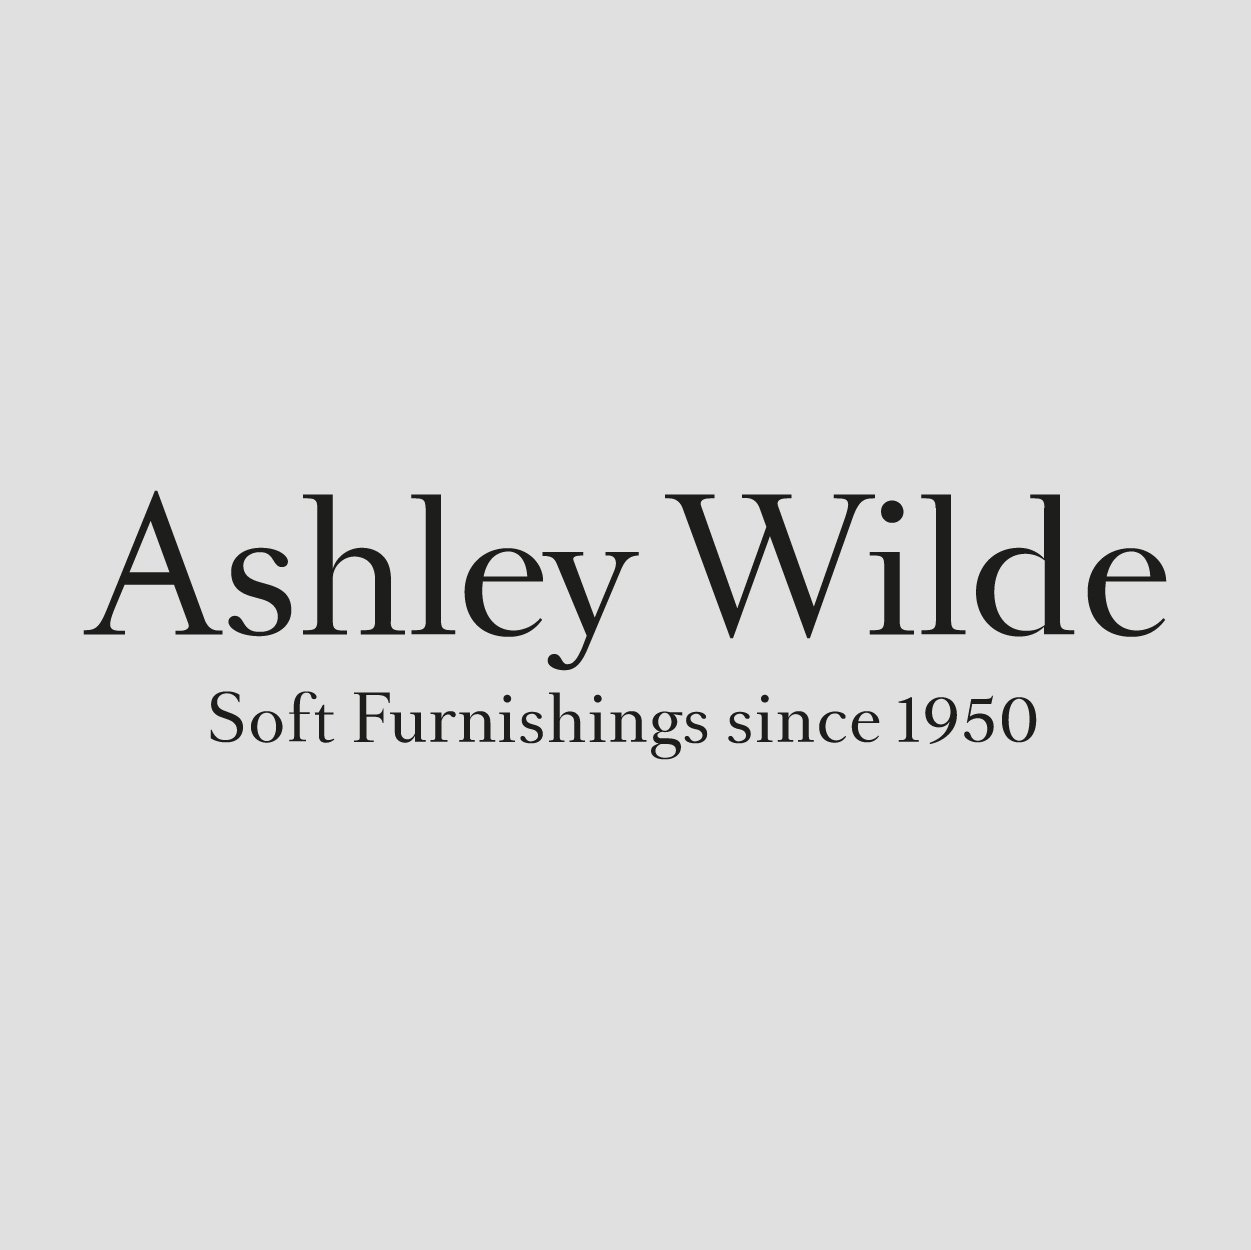 https://0201.nccdn.net/1_2/000/000/0da/120/ASHLEY-WILDE-logo.jpg